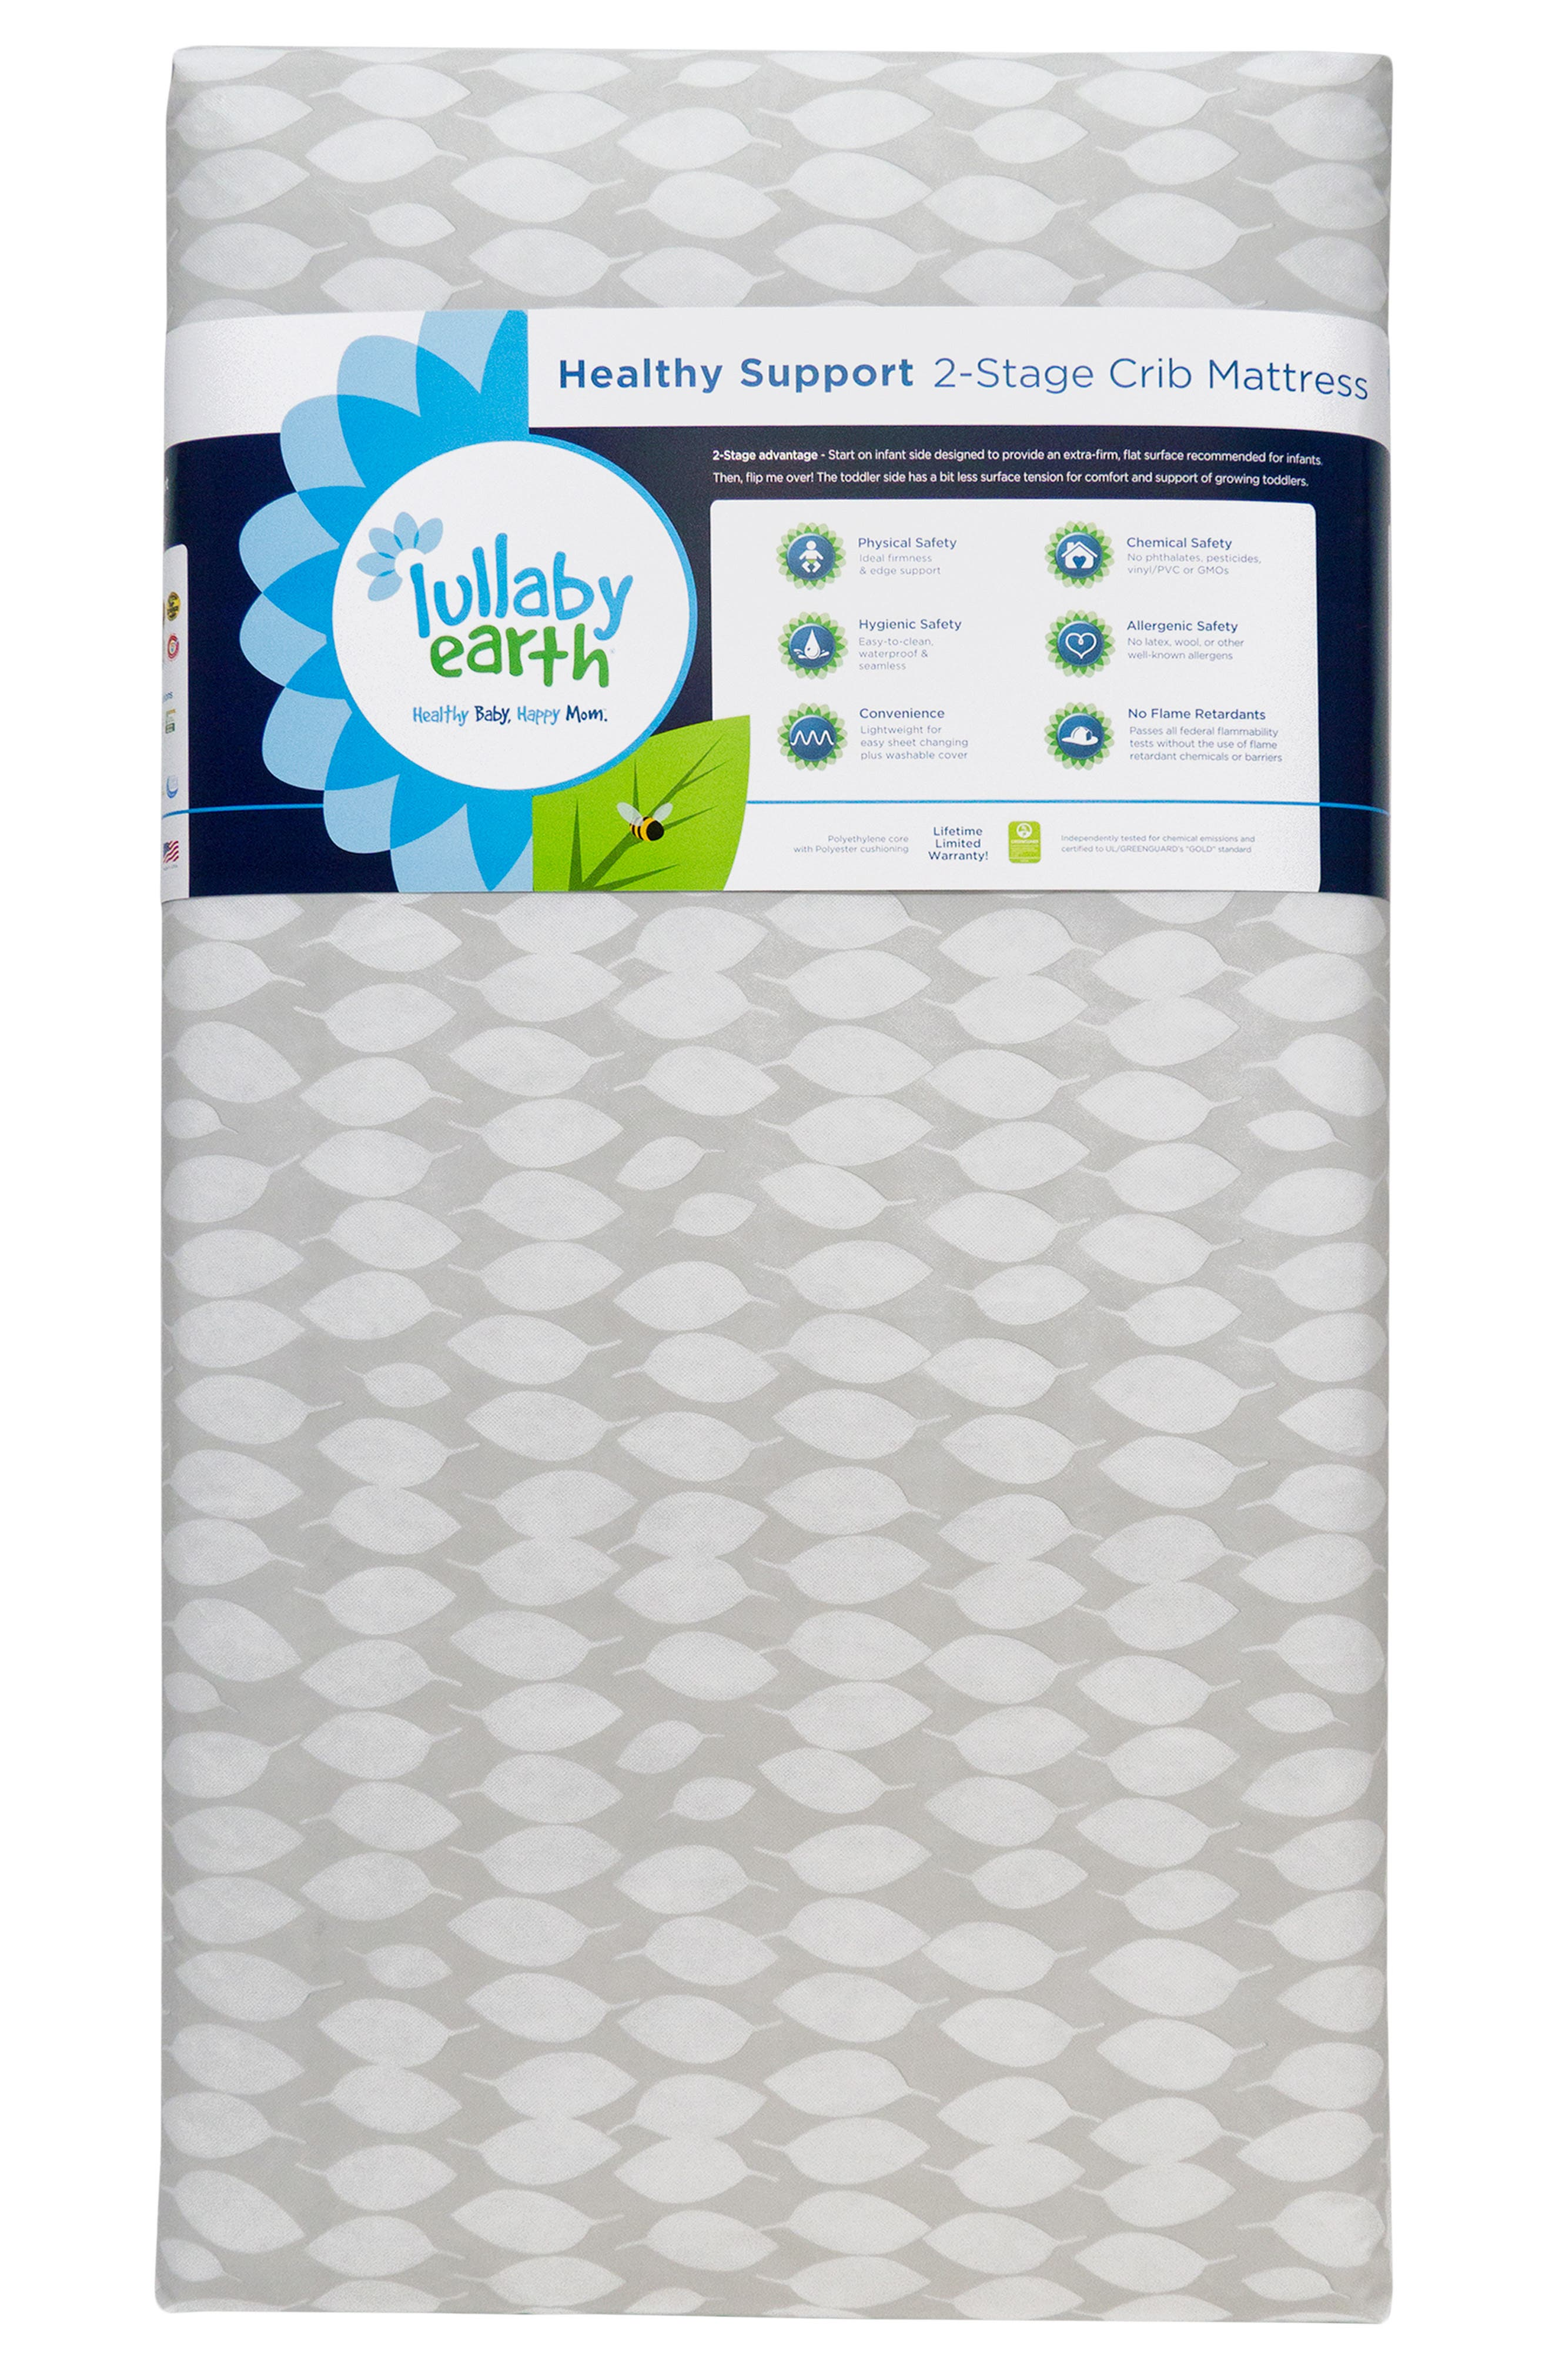 Healthy Support 2-Stage Crib Mattress,                             Main thumbnail 1, color,                             025